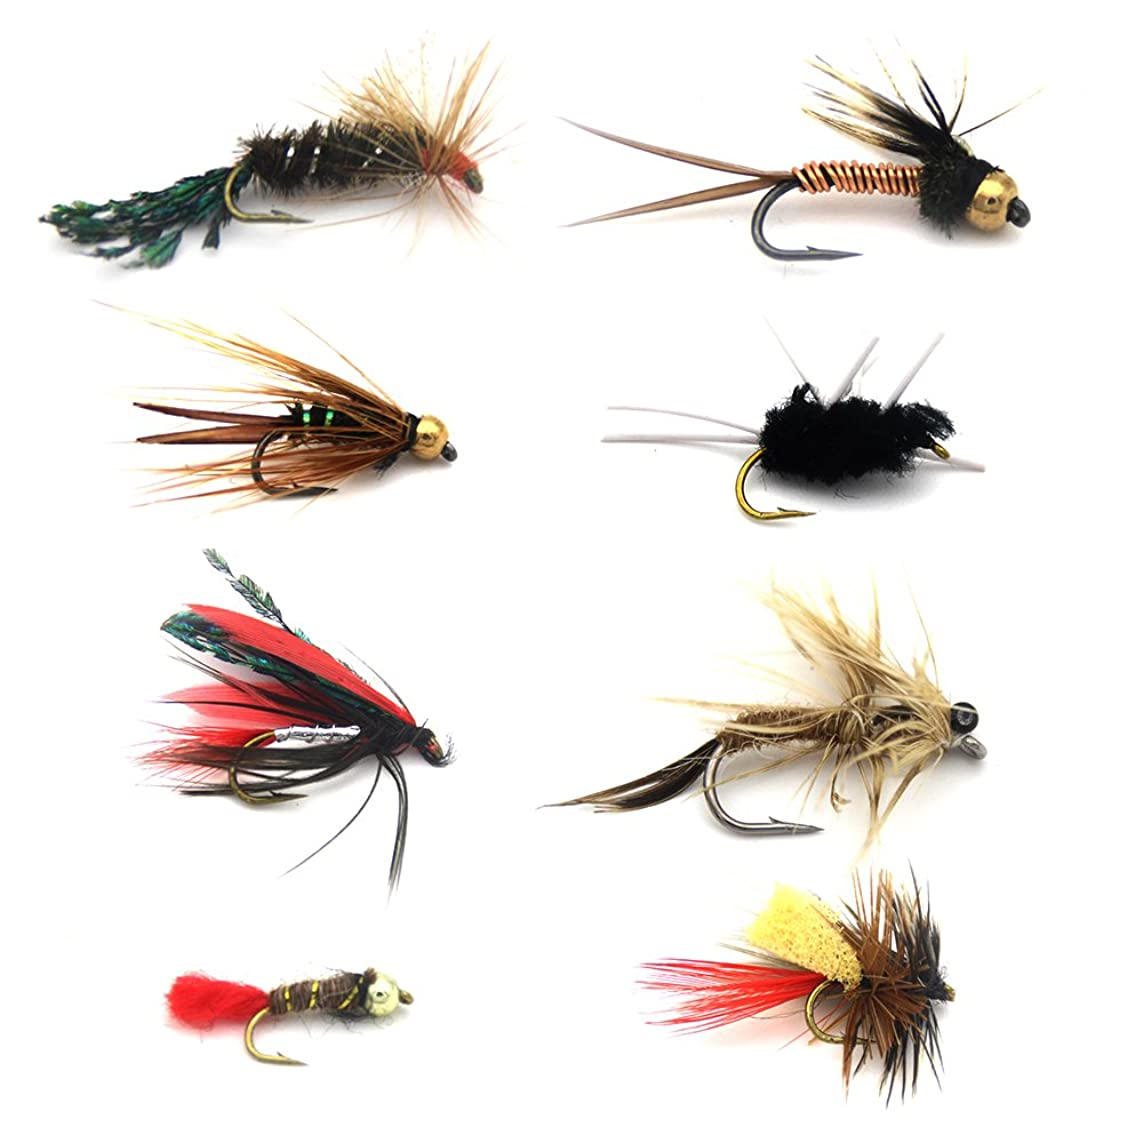 Fly Fishing Flies Assortment SaltwaterTrout Nymph Dry Wet Flies Egg Patterns For Flyfishing Bass Carp Panfish Redfish